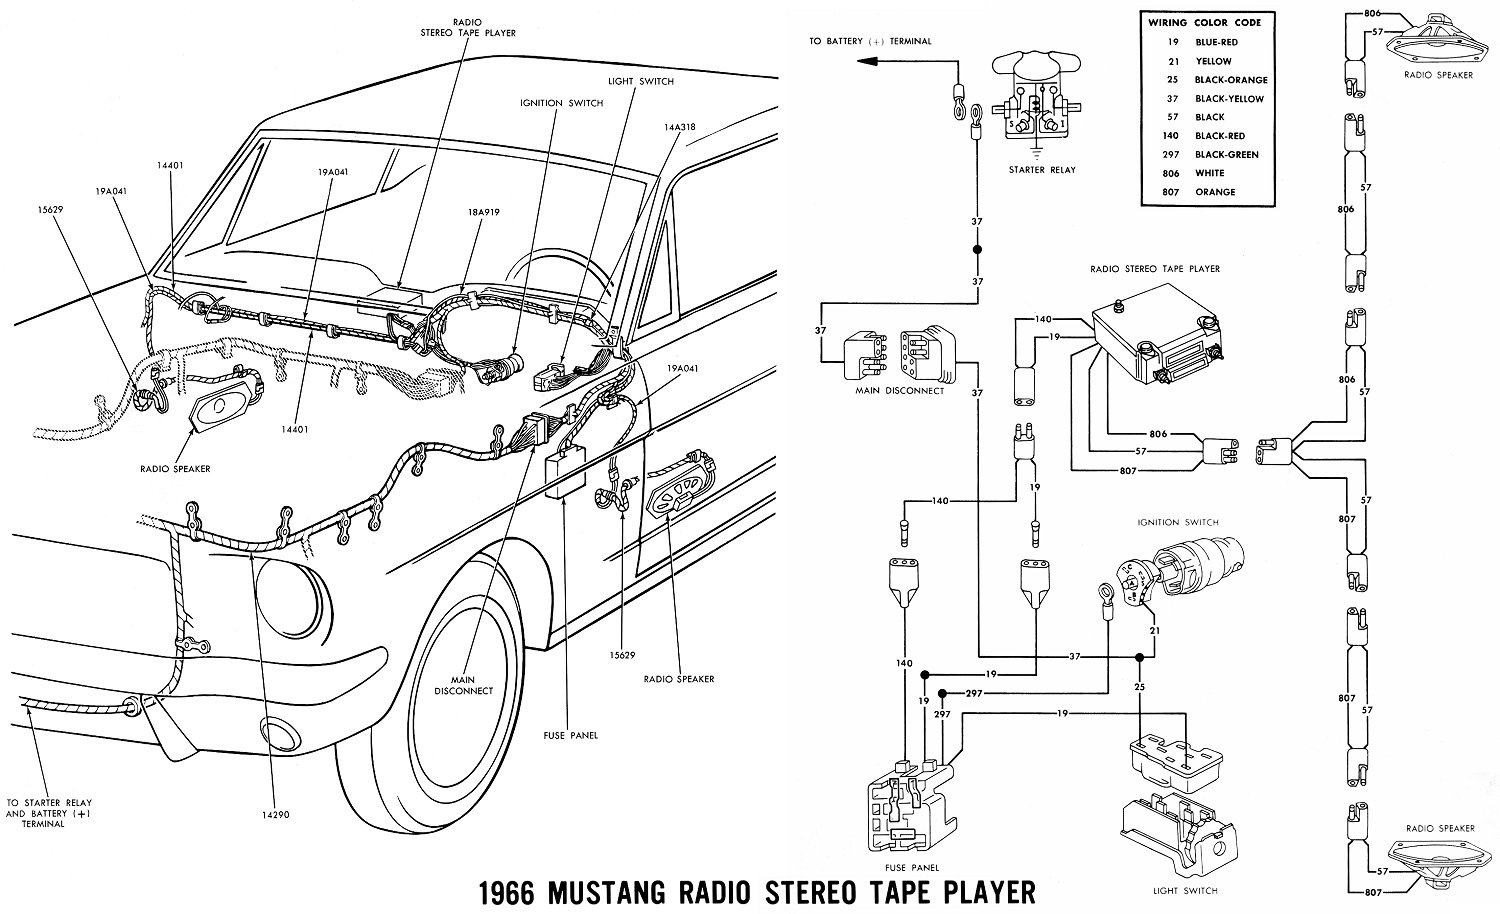 66stereo vintage mustang wiring diagrams 1965 mustang wiring diagram pdf at edmiracle.co